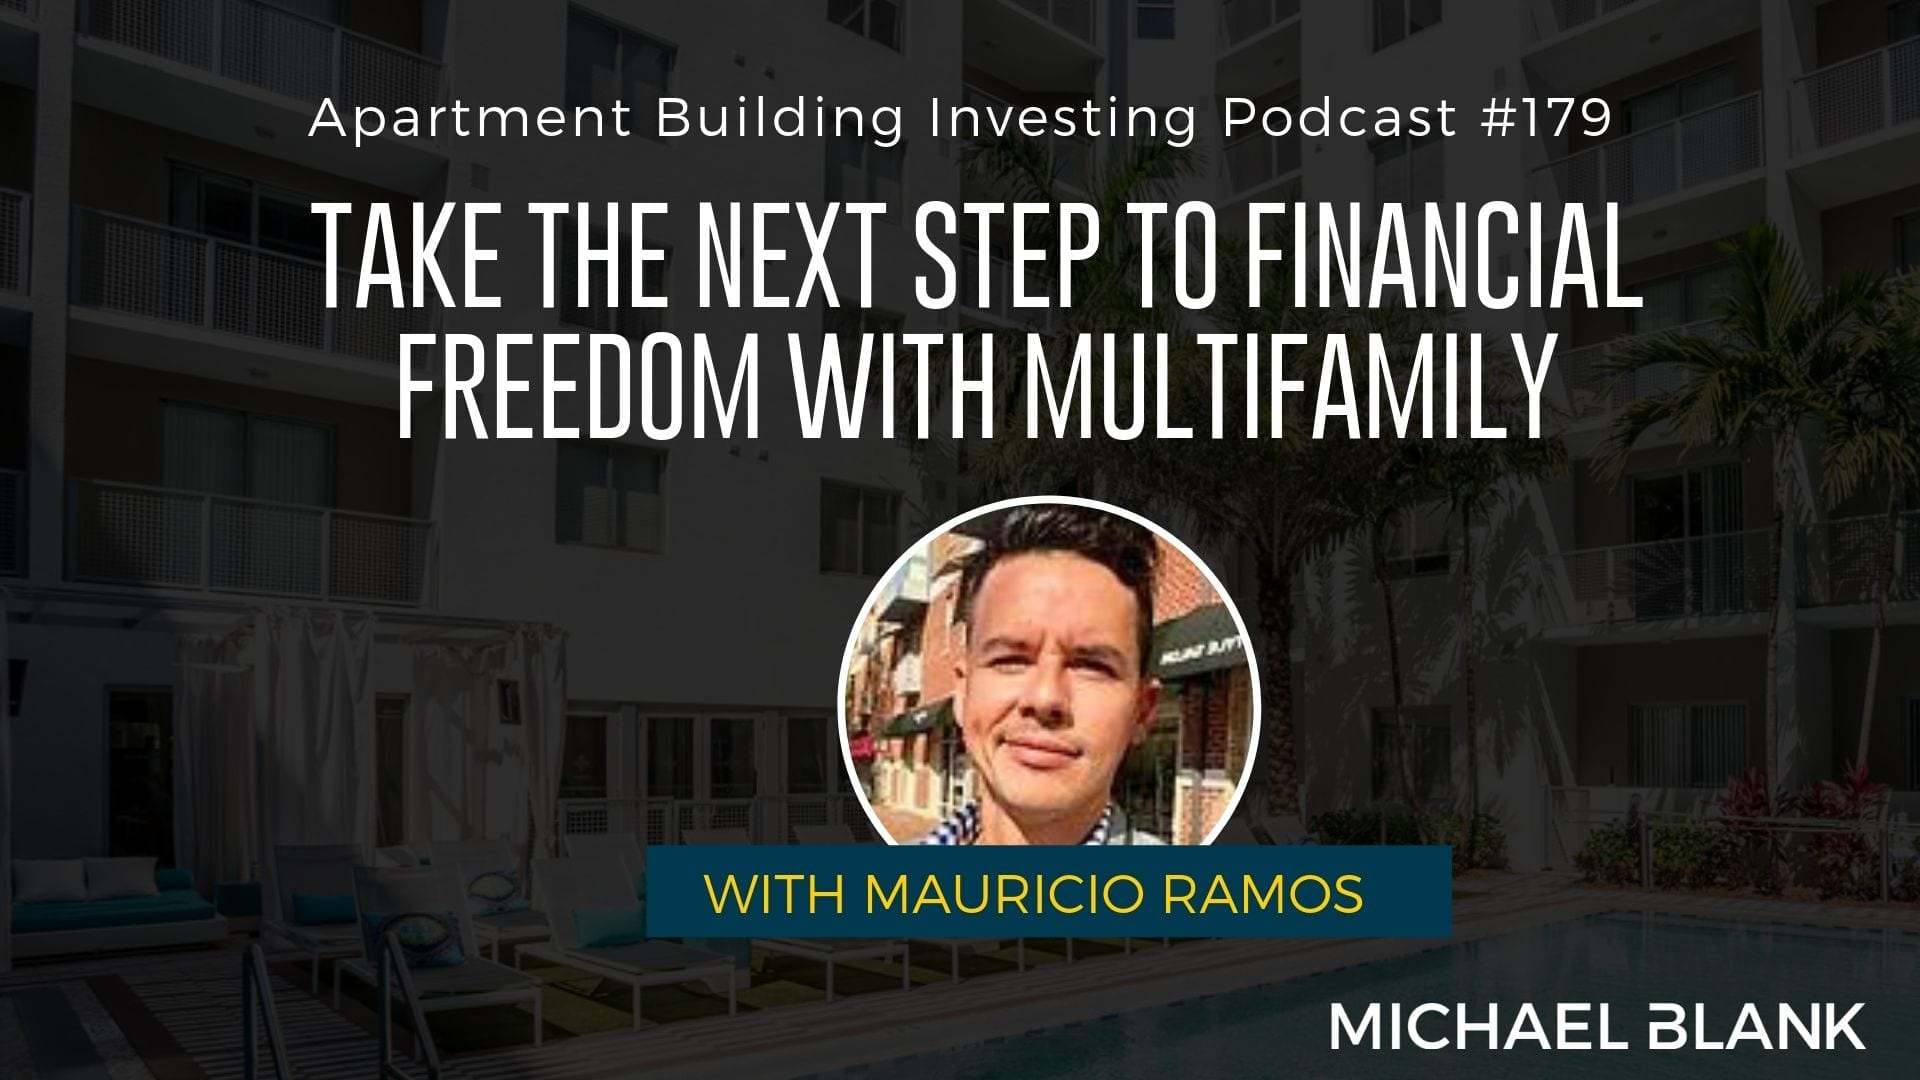 MB 179: Take the Next Step to Financial Freedom with Multifamily – With Mauricio Ramos